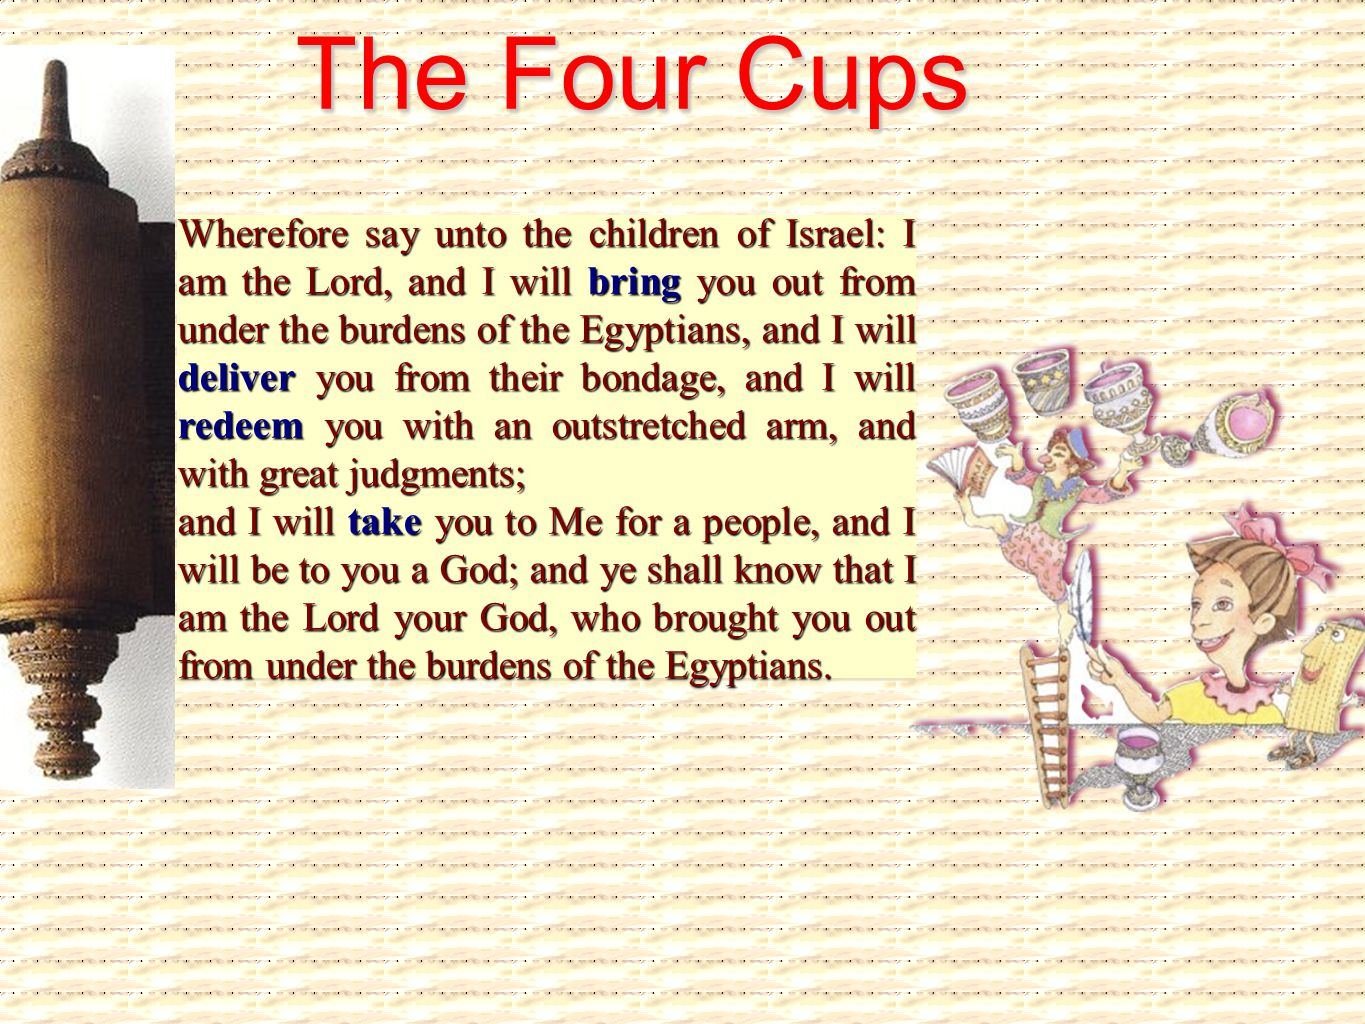 The Four Cups Wherefore say unto the children of Israel: I am the Lord, and I will bring you out from under the burdens of the Egyptians, and I will d